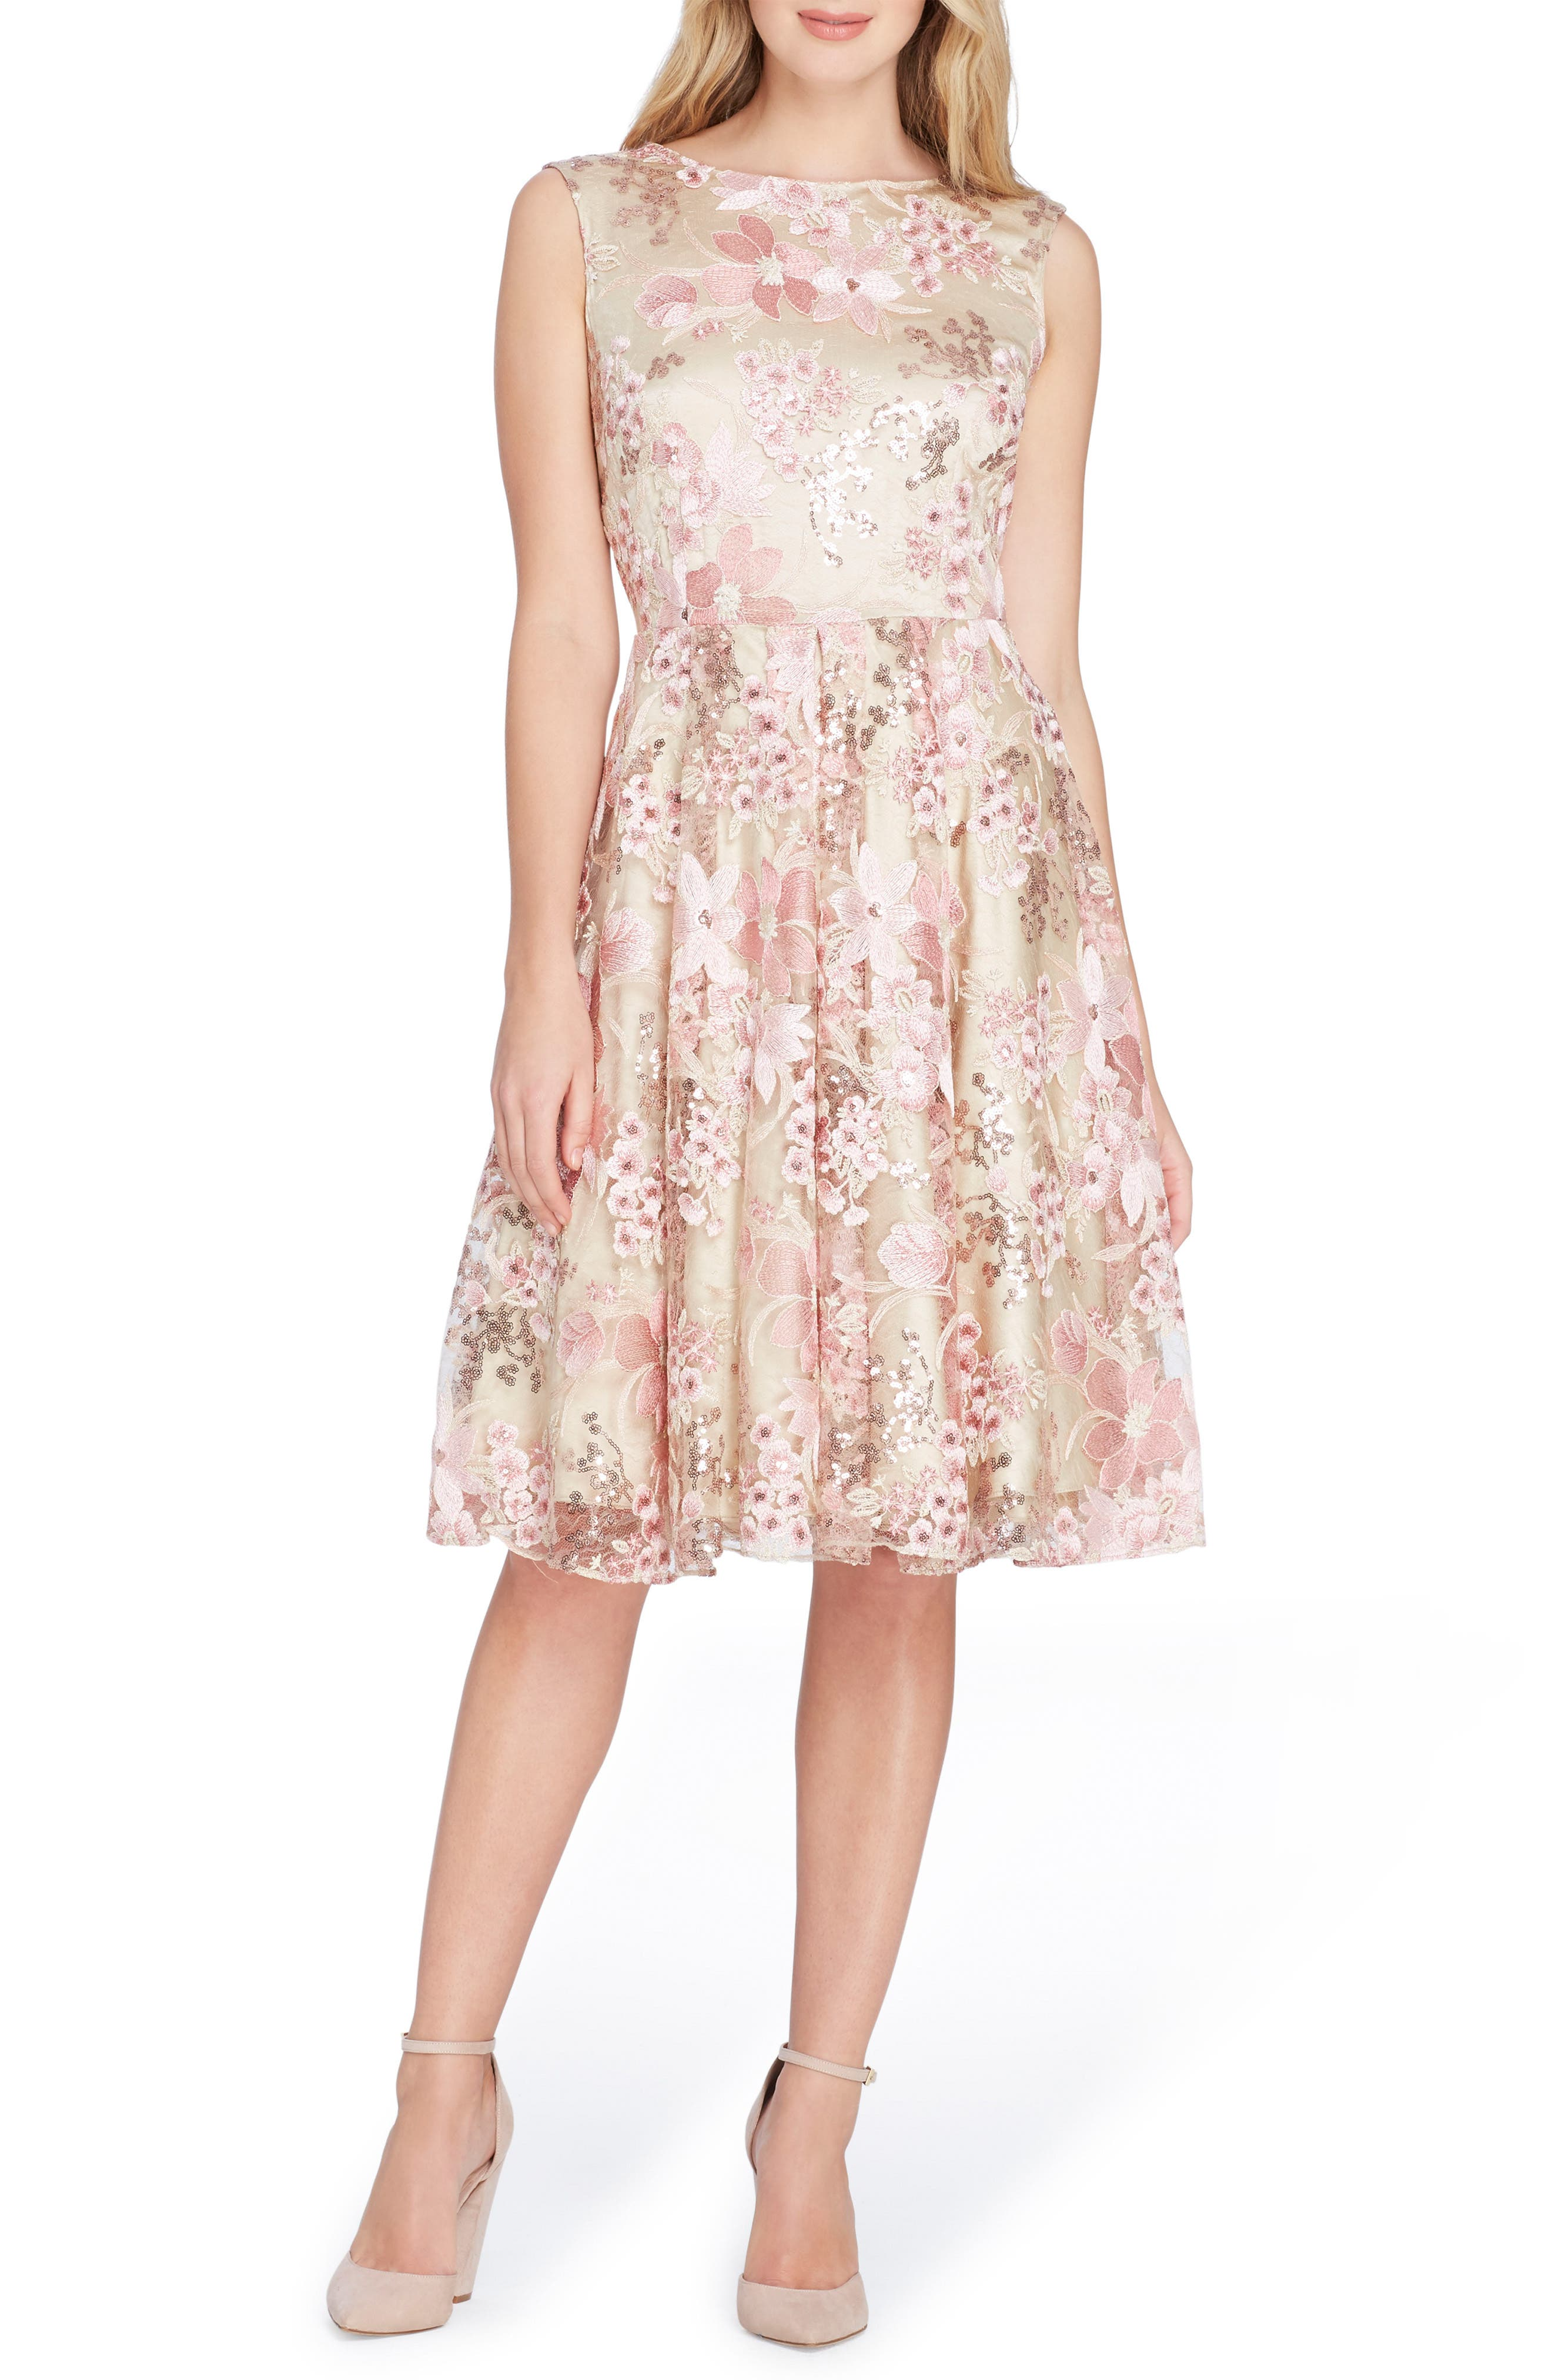 Sleeveless Embroidery Fit & Flare Dress,                             Main thumbnail 1, color,                             Nude/ Tea Rose/ Blush